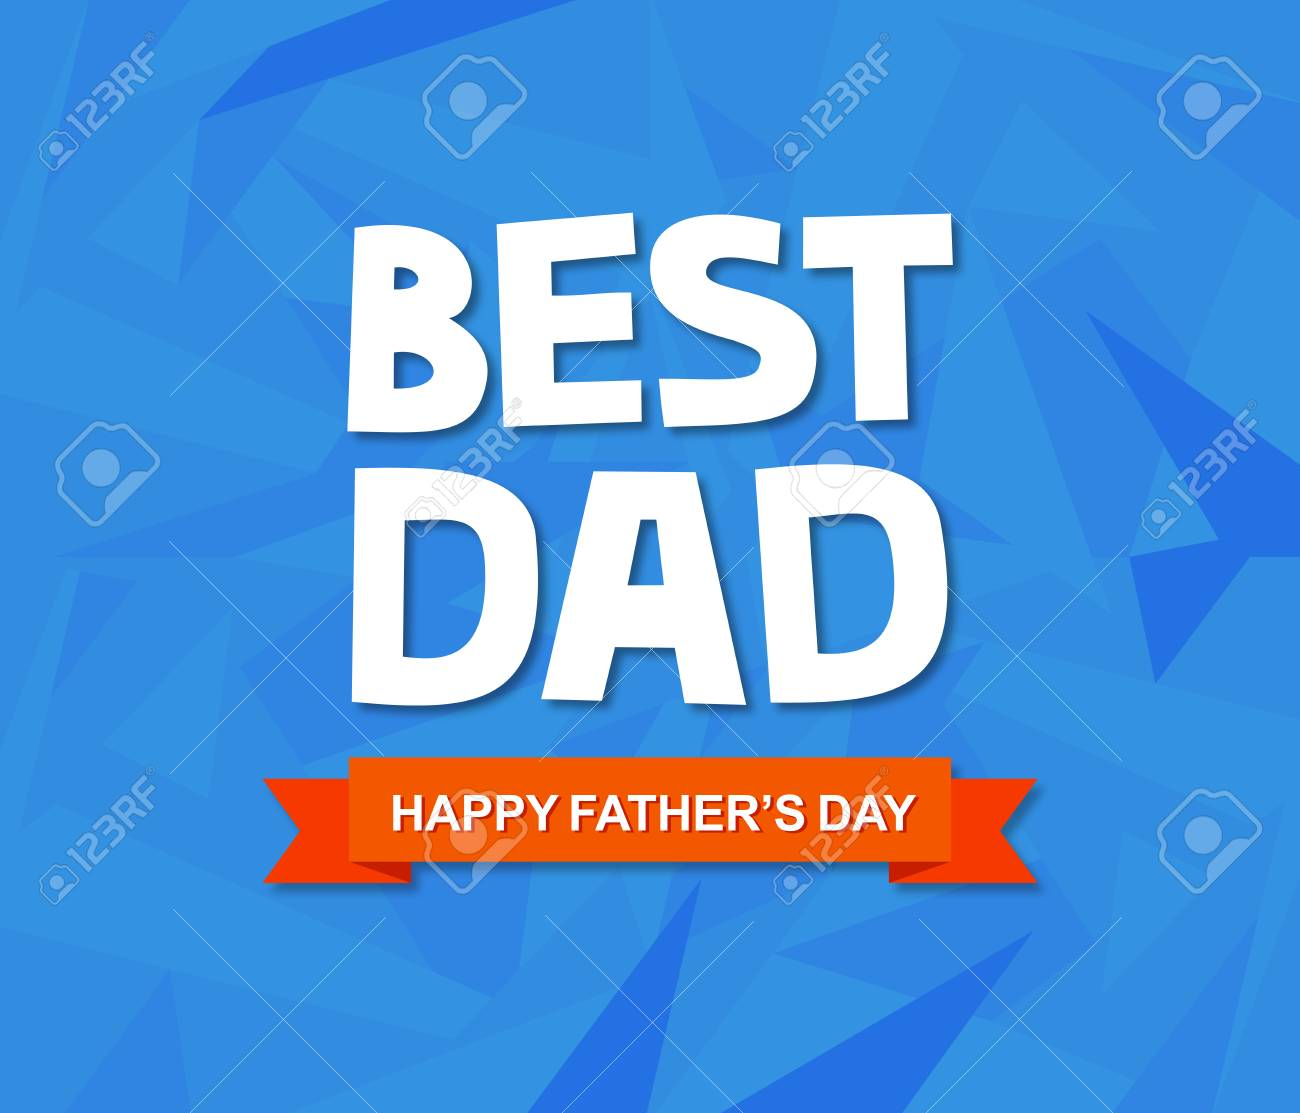 Fathers Day Greeting Card With Custom Typography And Geometric